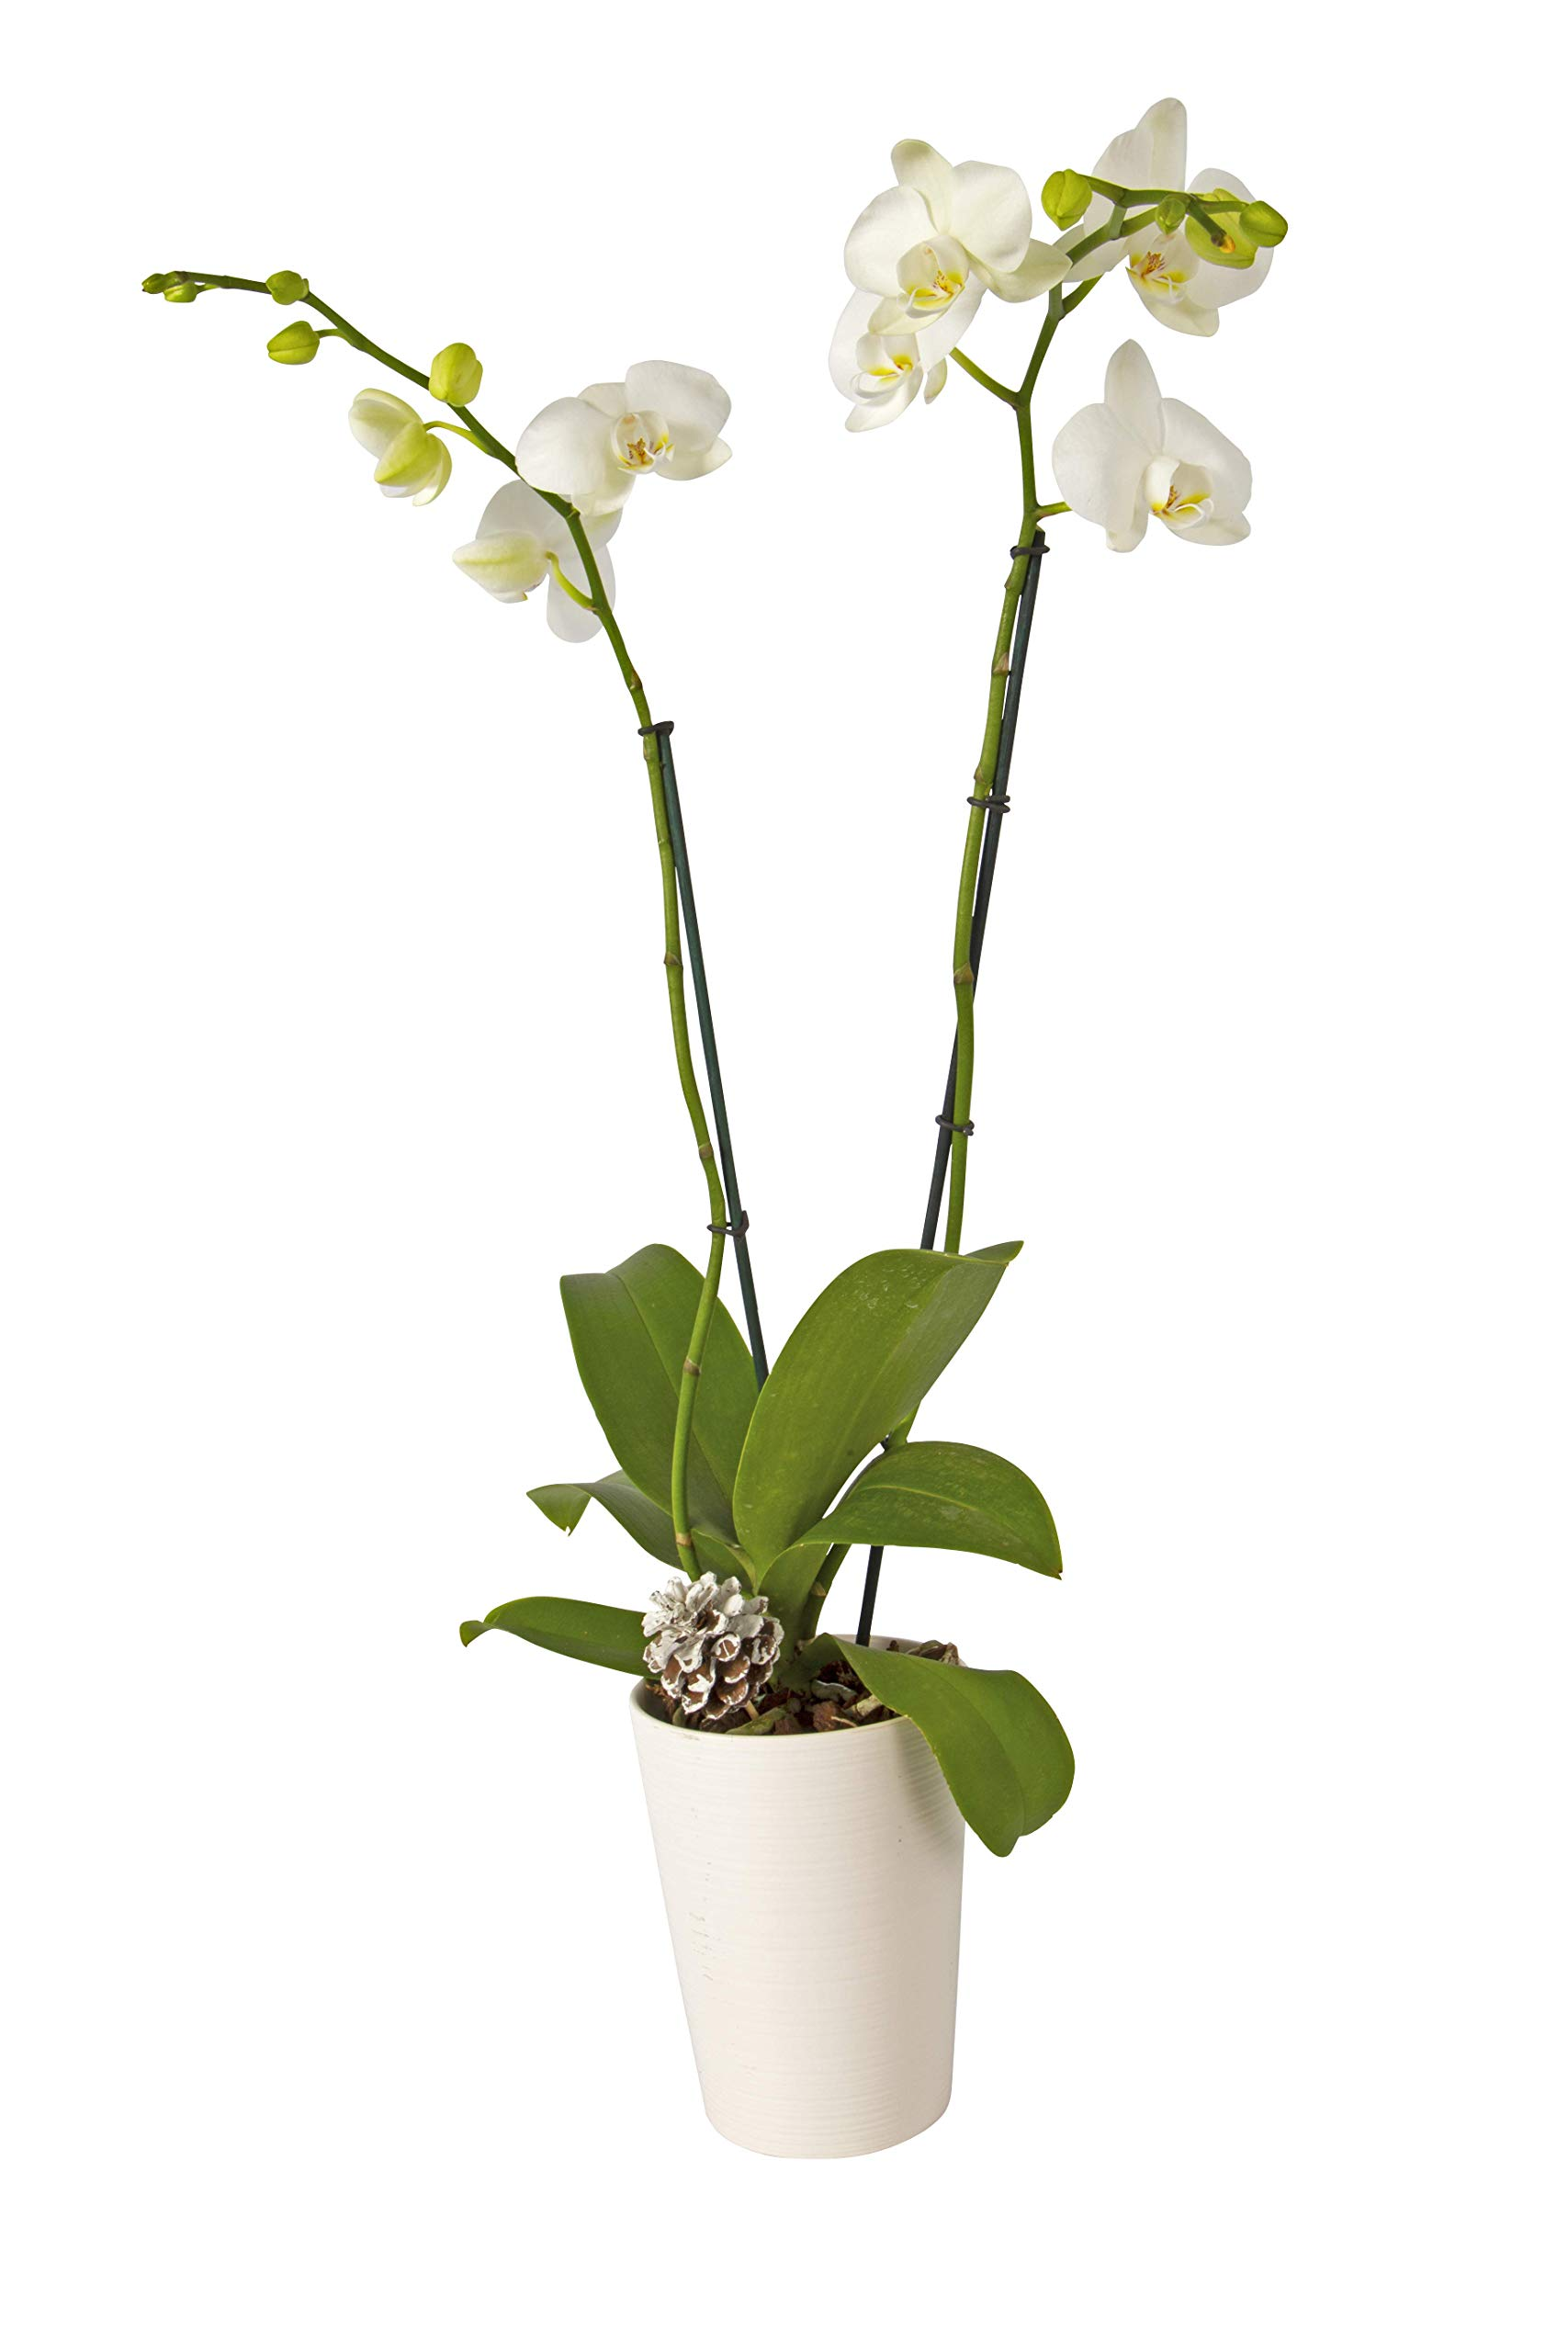 Color Orchids Live Holiday Orchid Blooming Double Stem Phalaenopsis Plant in Ceramic Pot, 20''-24'' Tall, White Blooms by Color Orchids